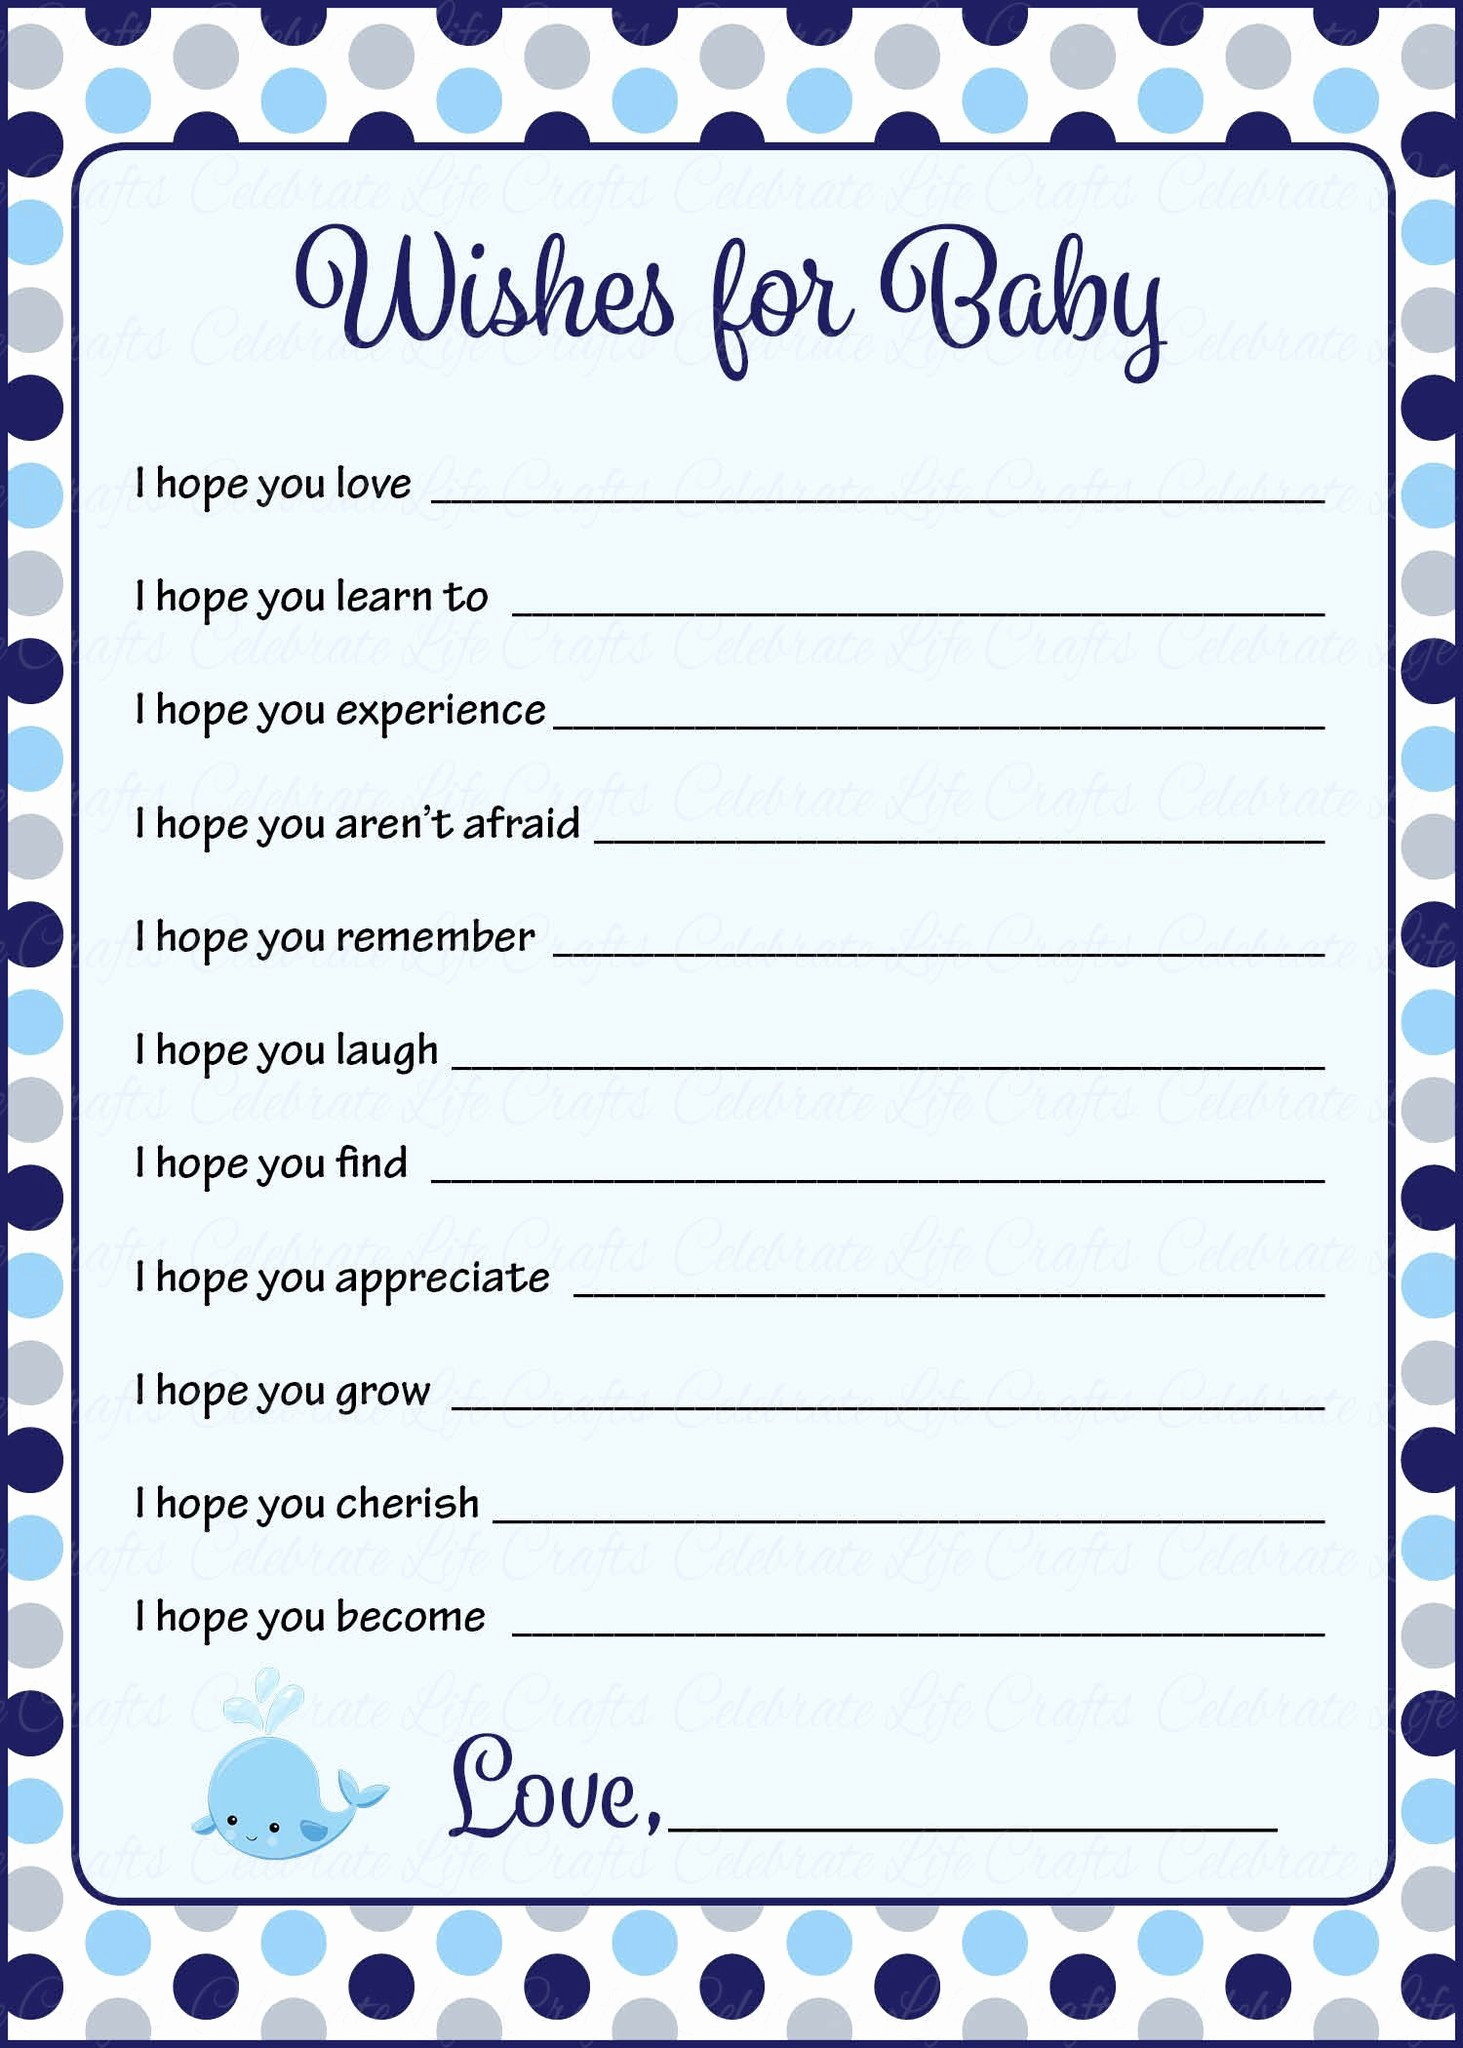 Printable Baby Shower Cards Fresh Wishes for Baby Shower Activity Whale Baby Shower theme